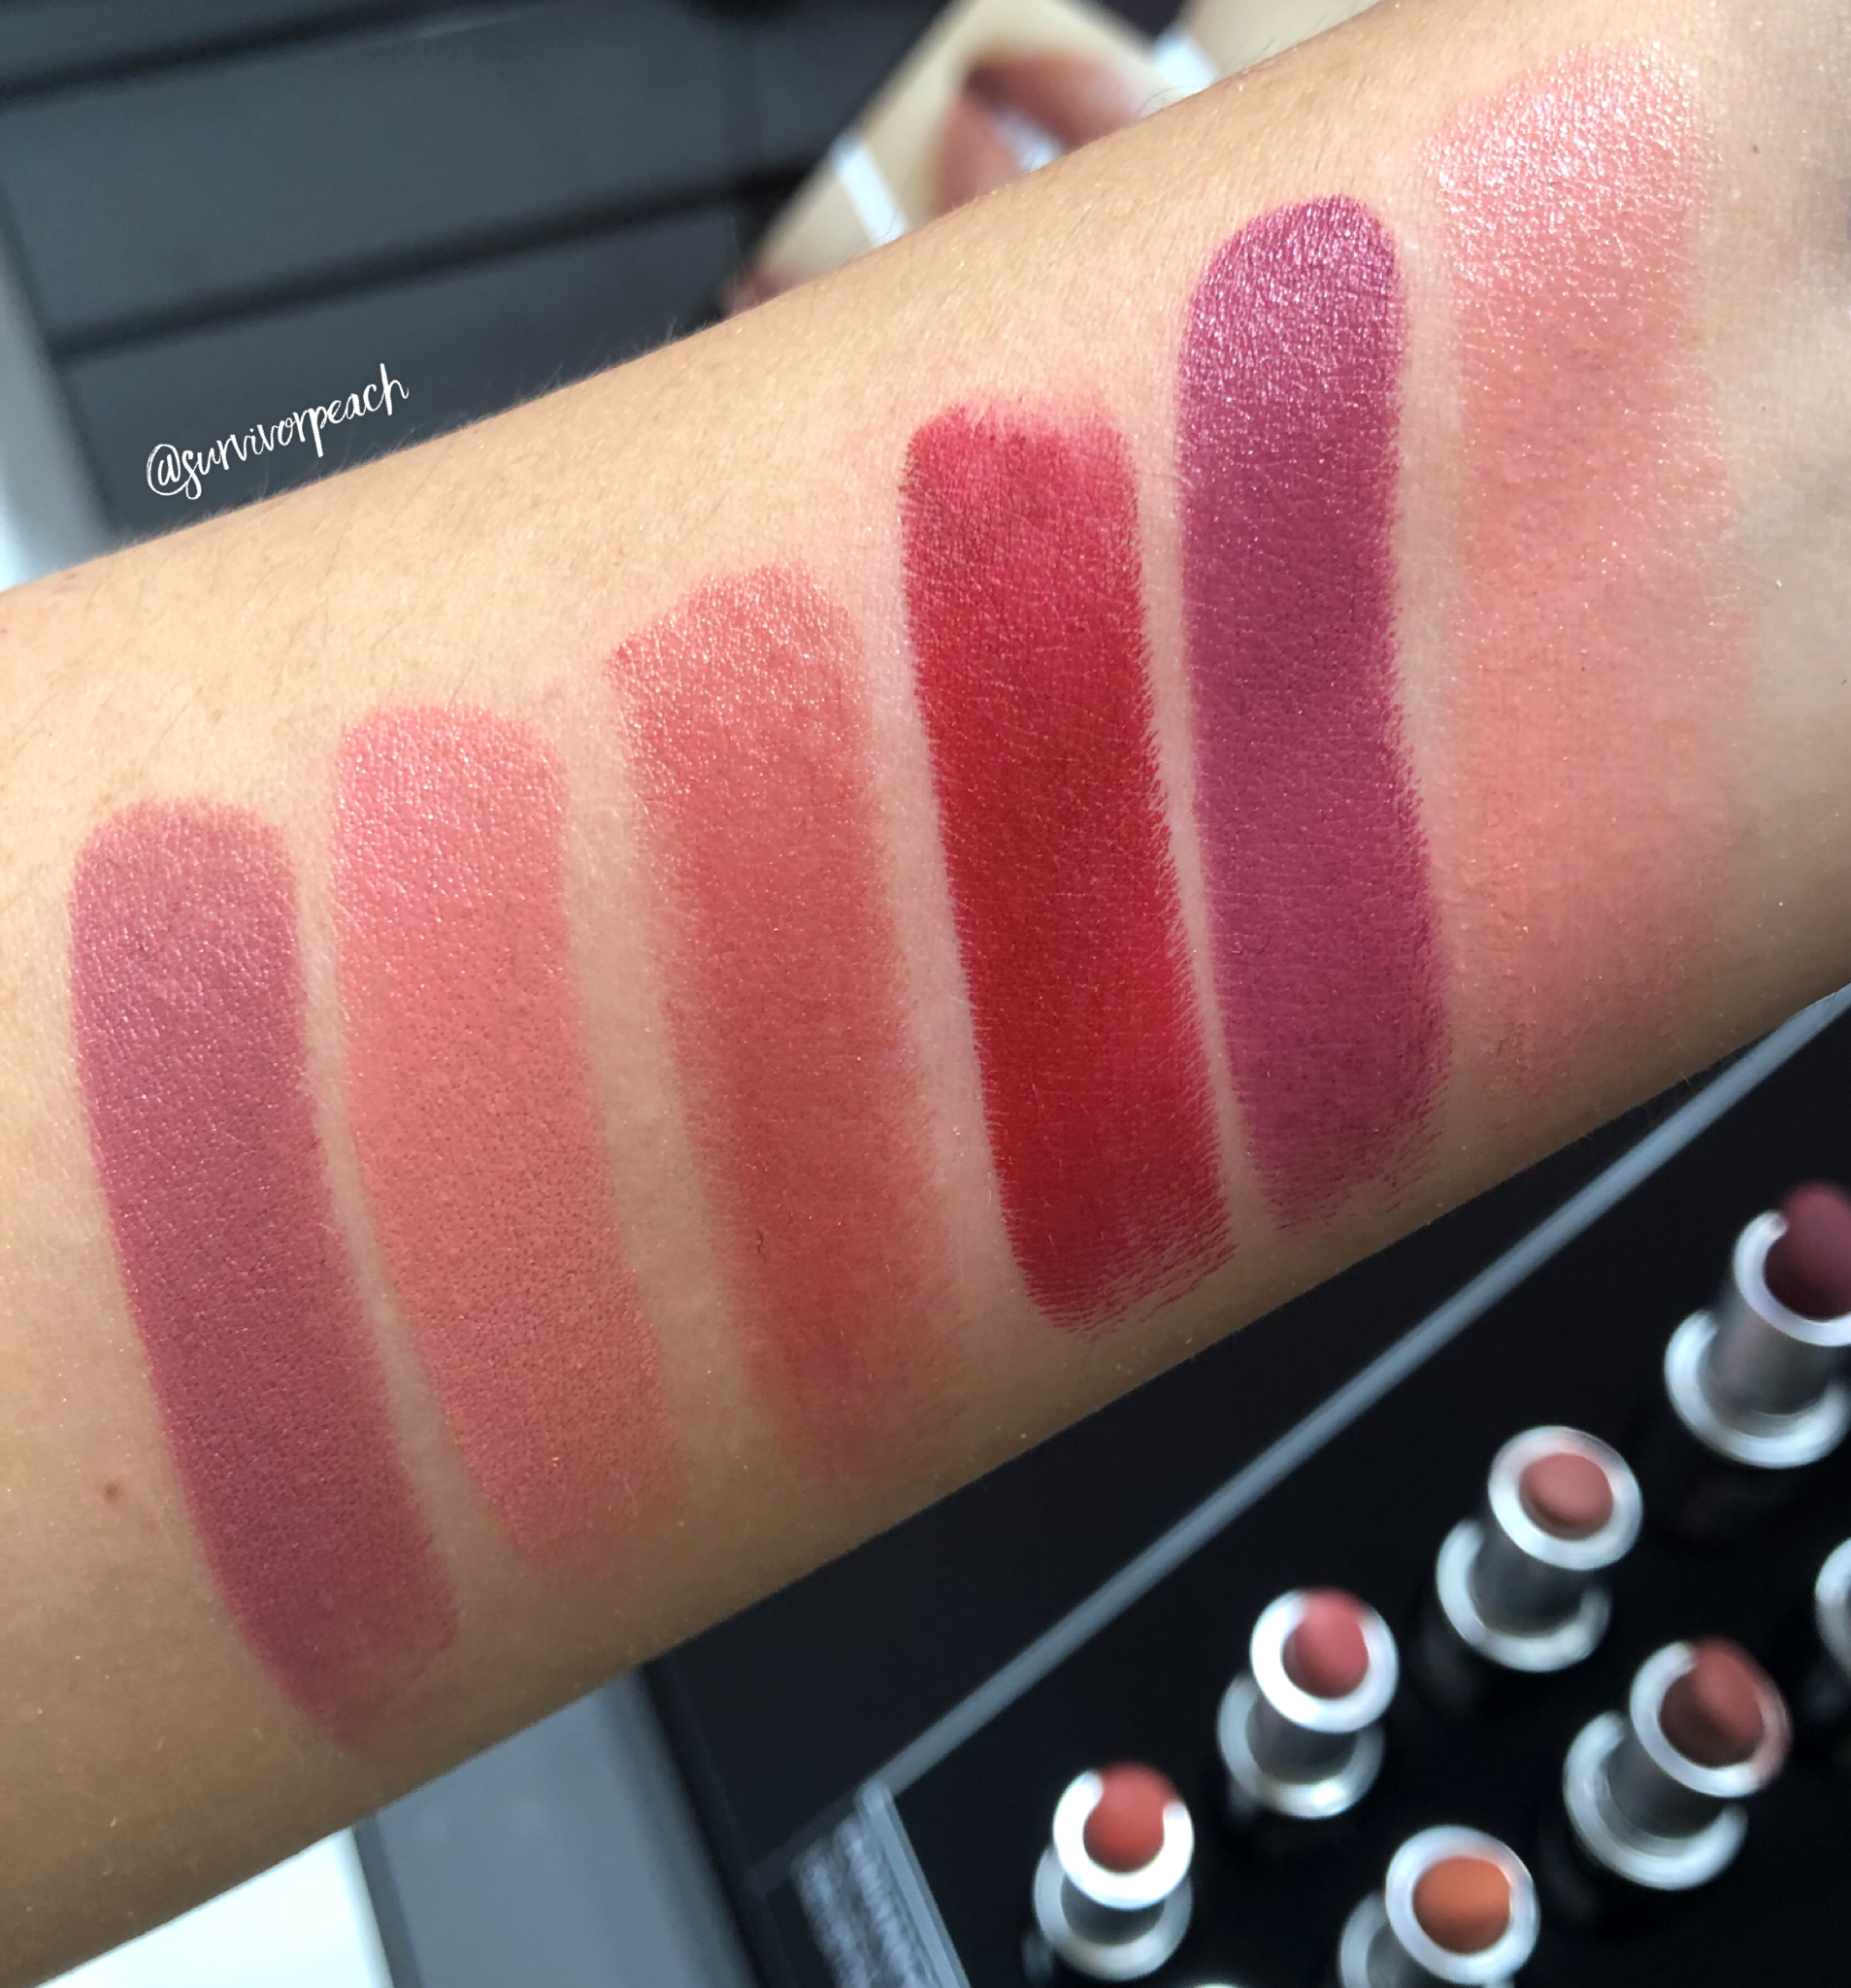 Mac Naturally You Lipstick swatches - Flamingo, Captive, Russian Red, Twig, Spotlight Me, On Hold.